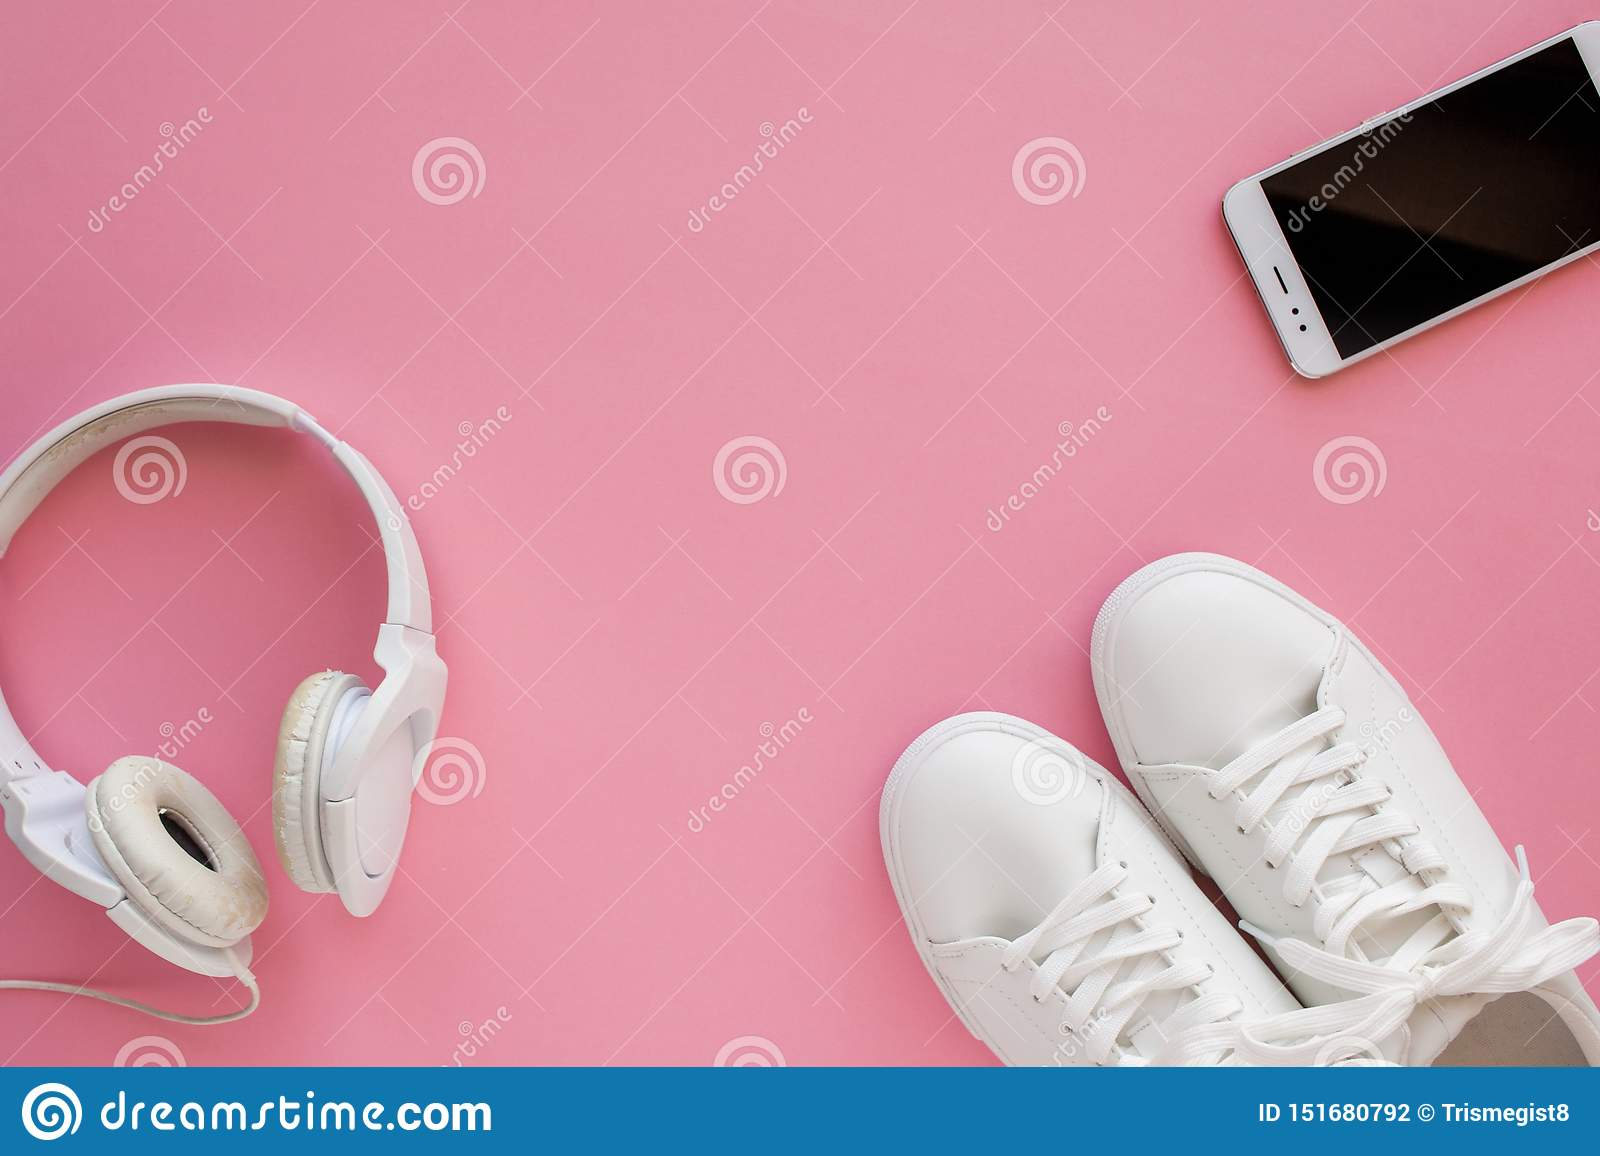 White sneakers, headphones, smartphone are lying on a bright pink background.